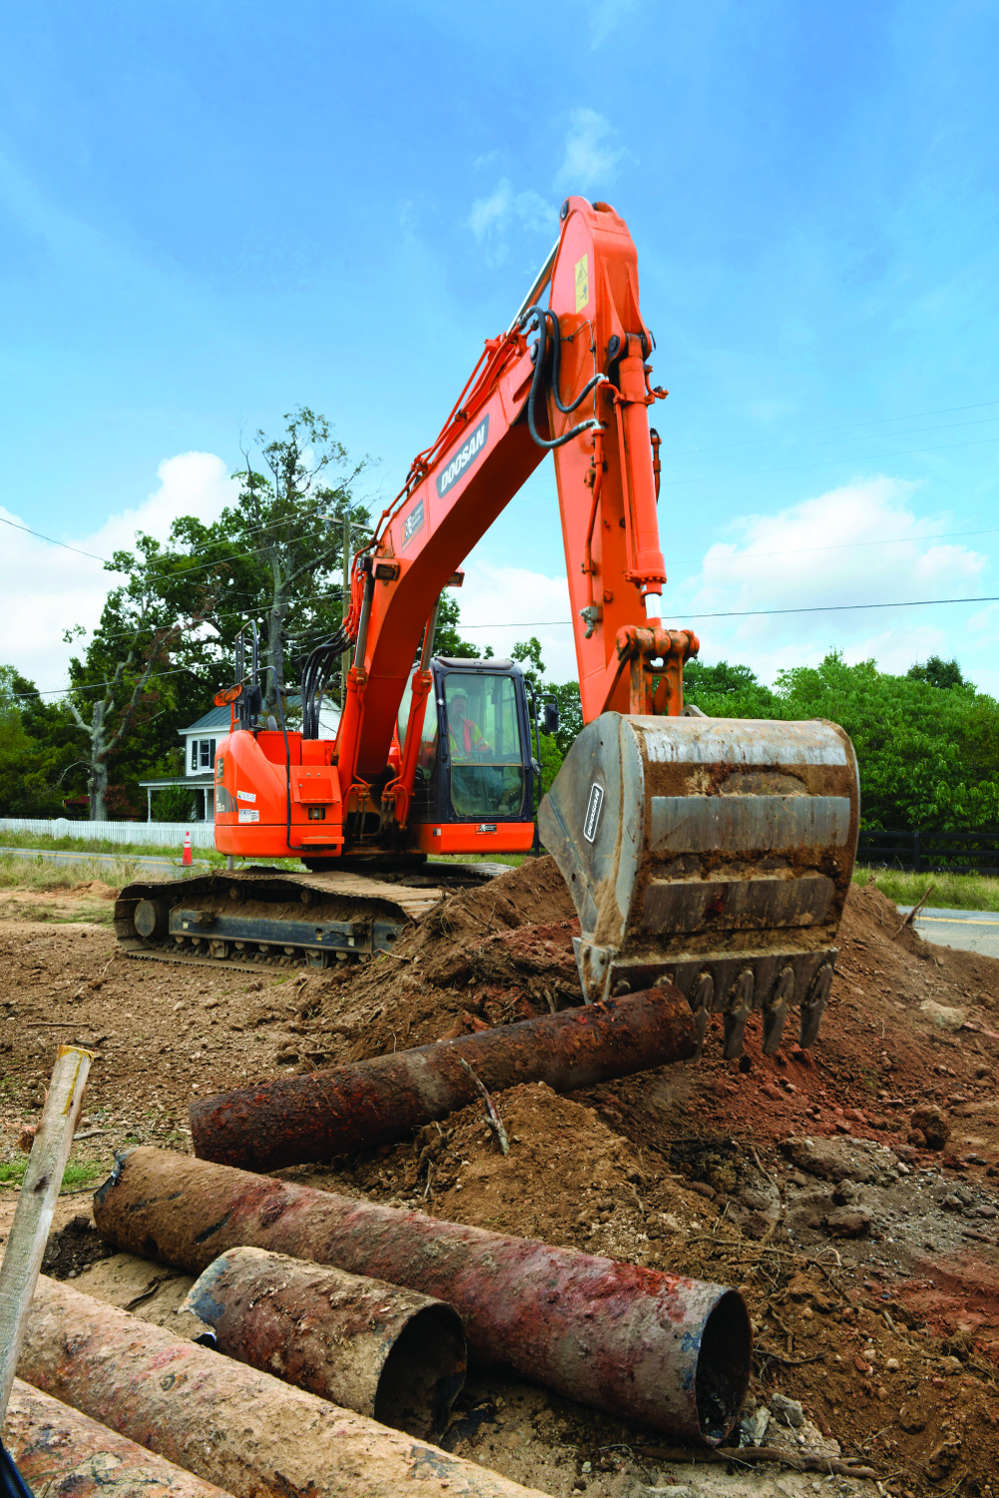 Branch Highways Doosan crawler excavator handles a variety of jobs, including digging, loading trucks, moving materials and land clearing.